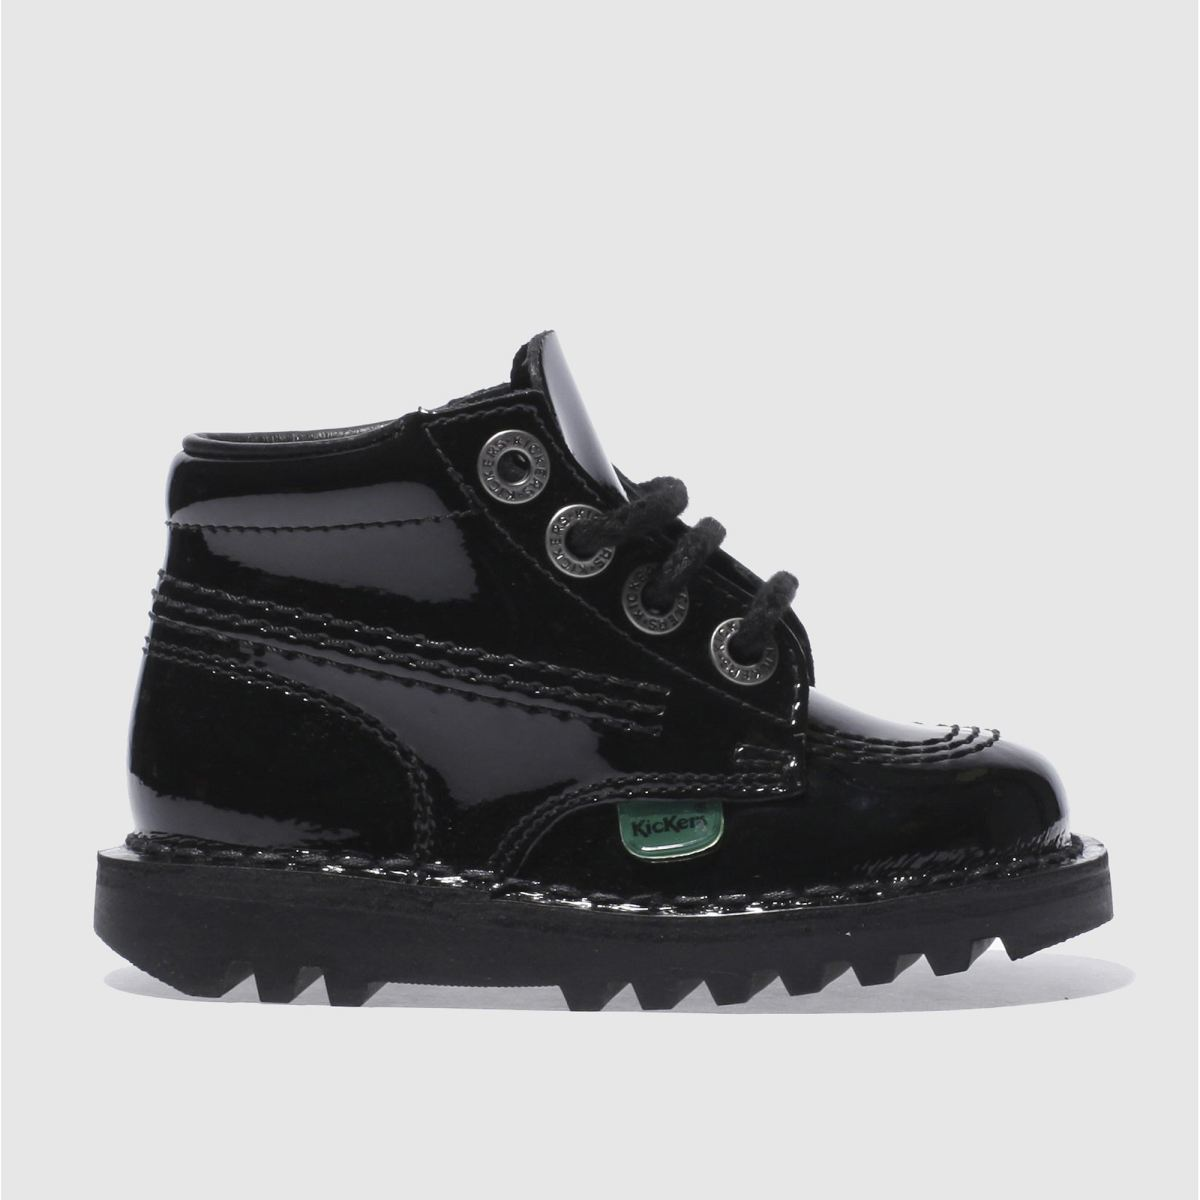 Kickers Black Kick Hi Patent Unisex Toddler Toddler